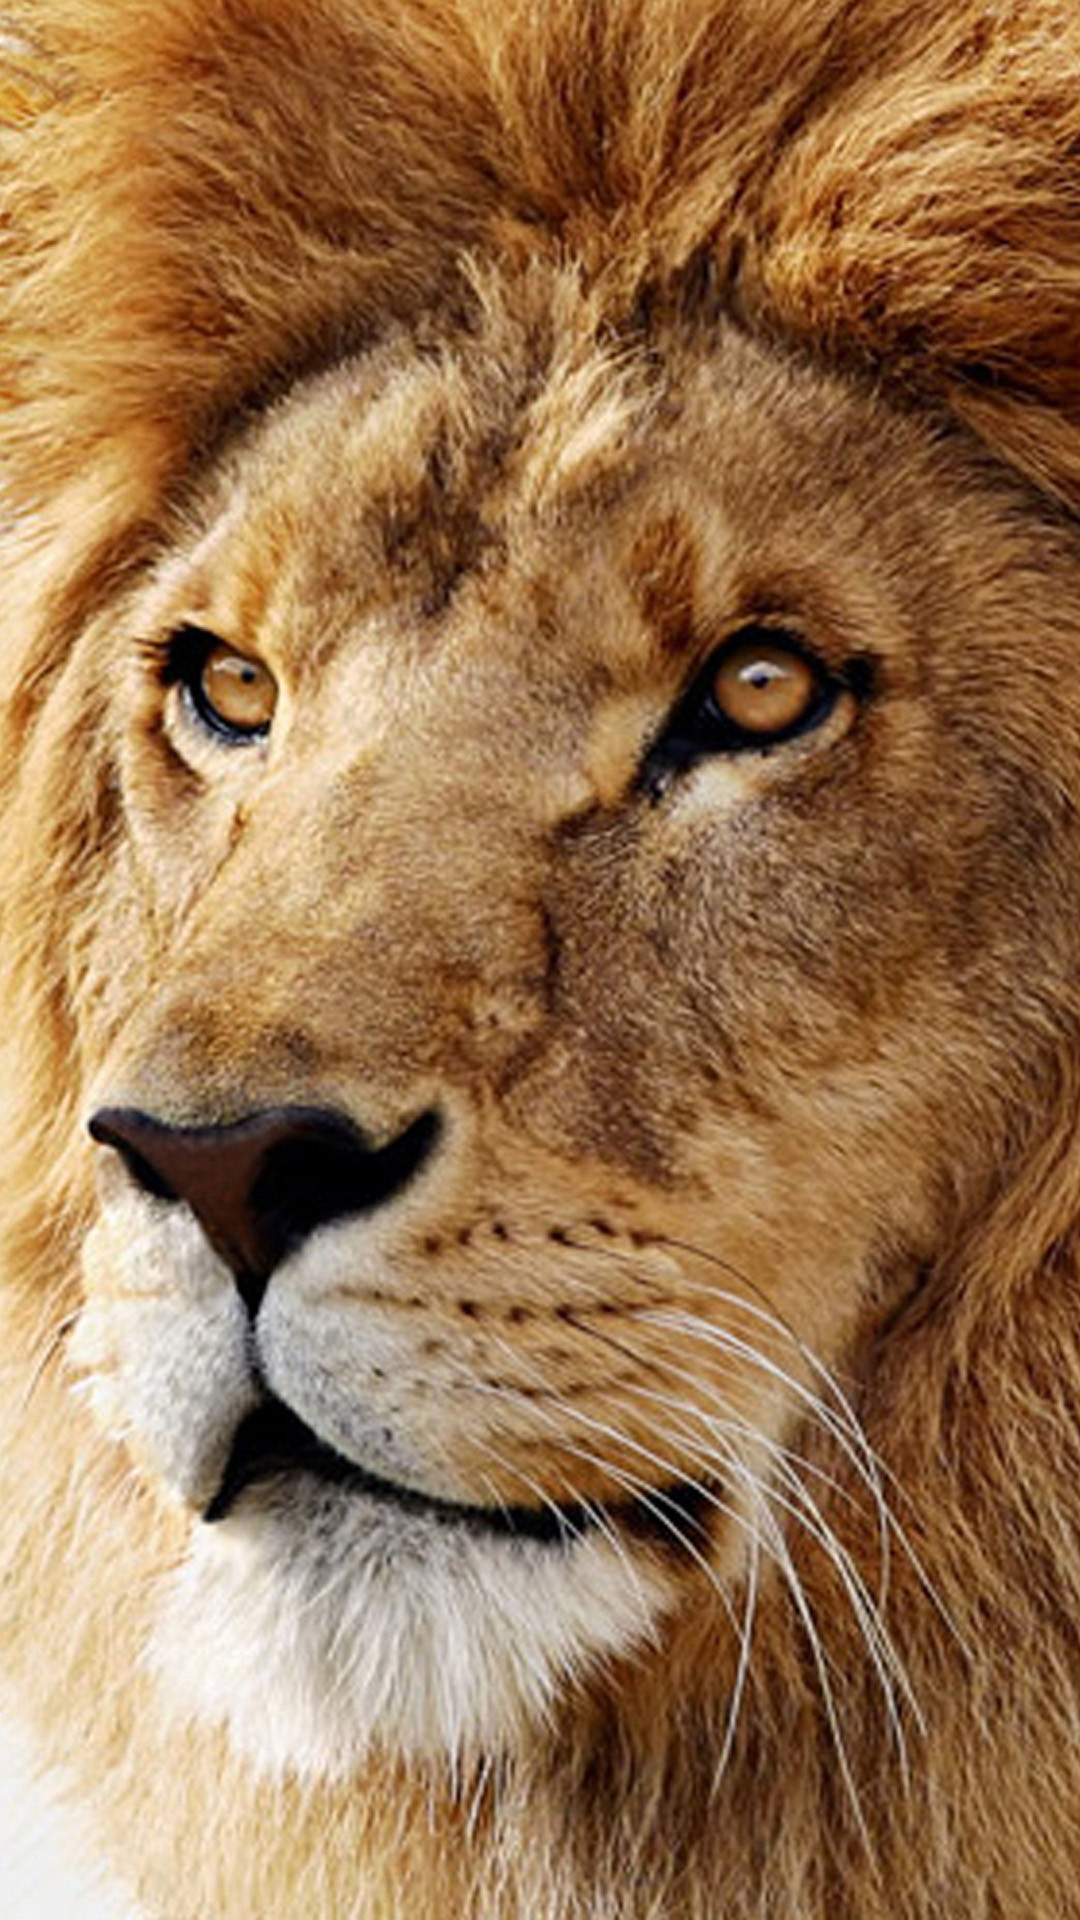 iPhone 6 plus Mac os x lion Wallpapers